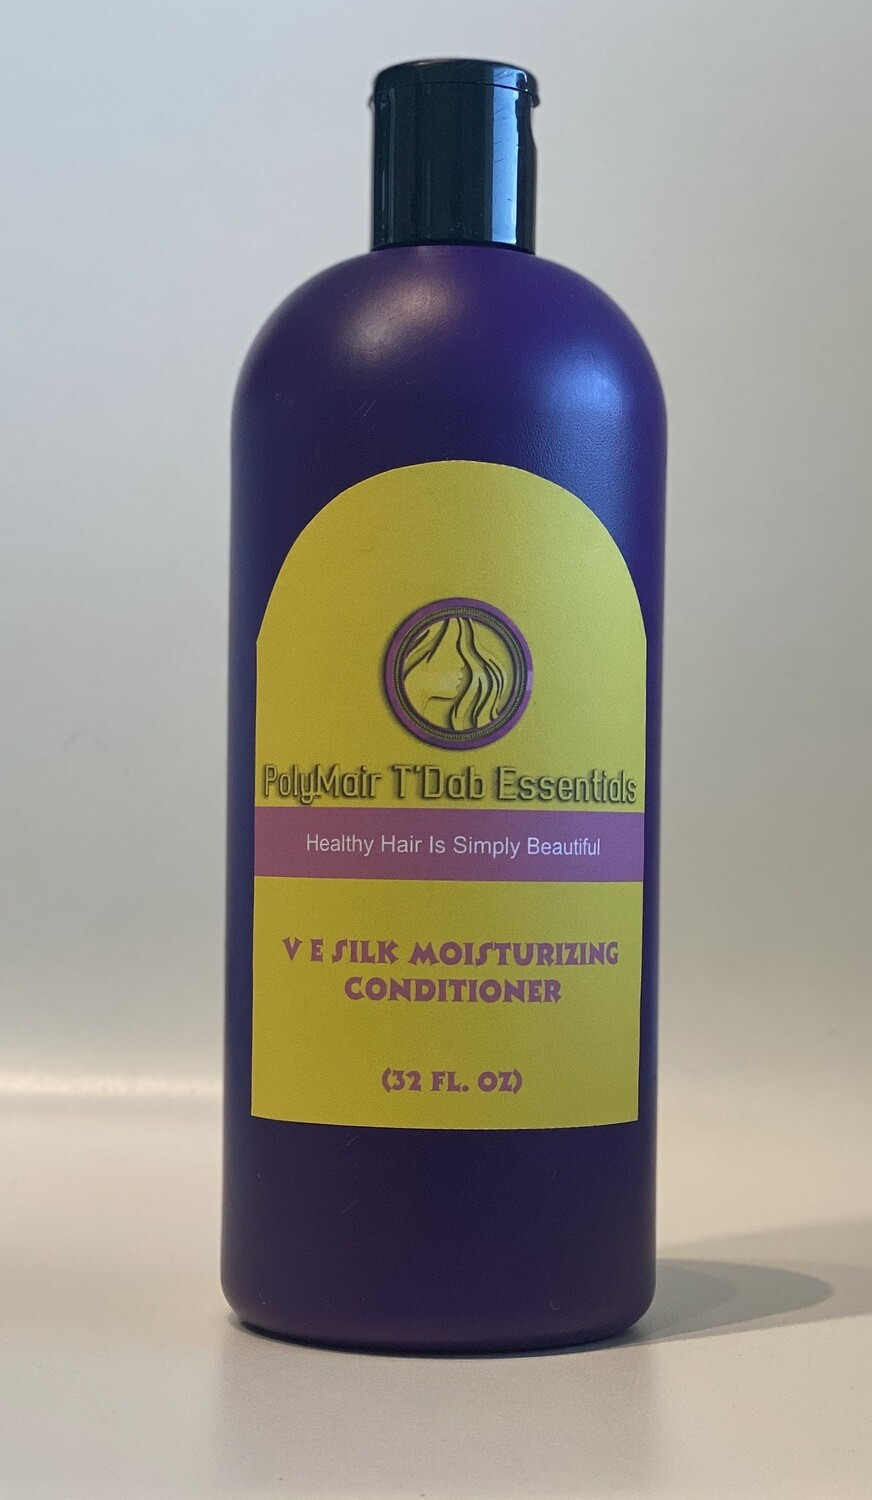 V E Silk Moisturizing Conditioner